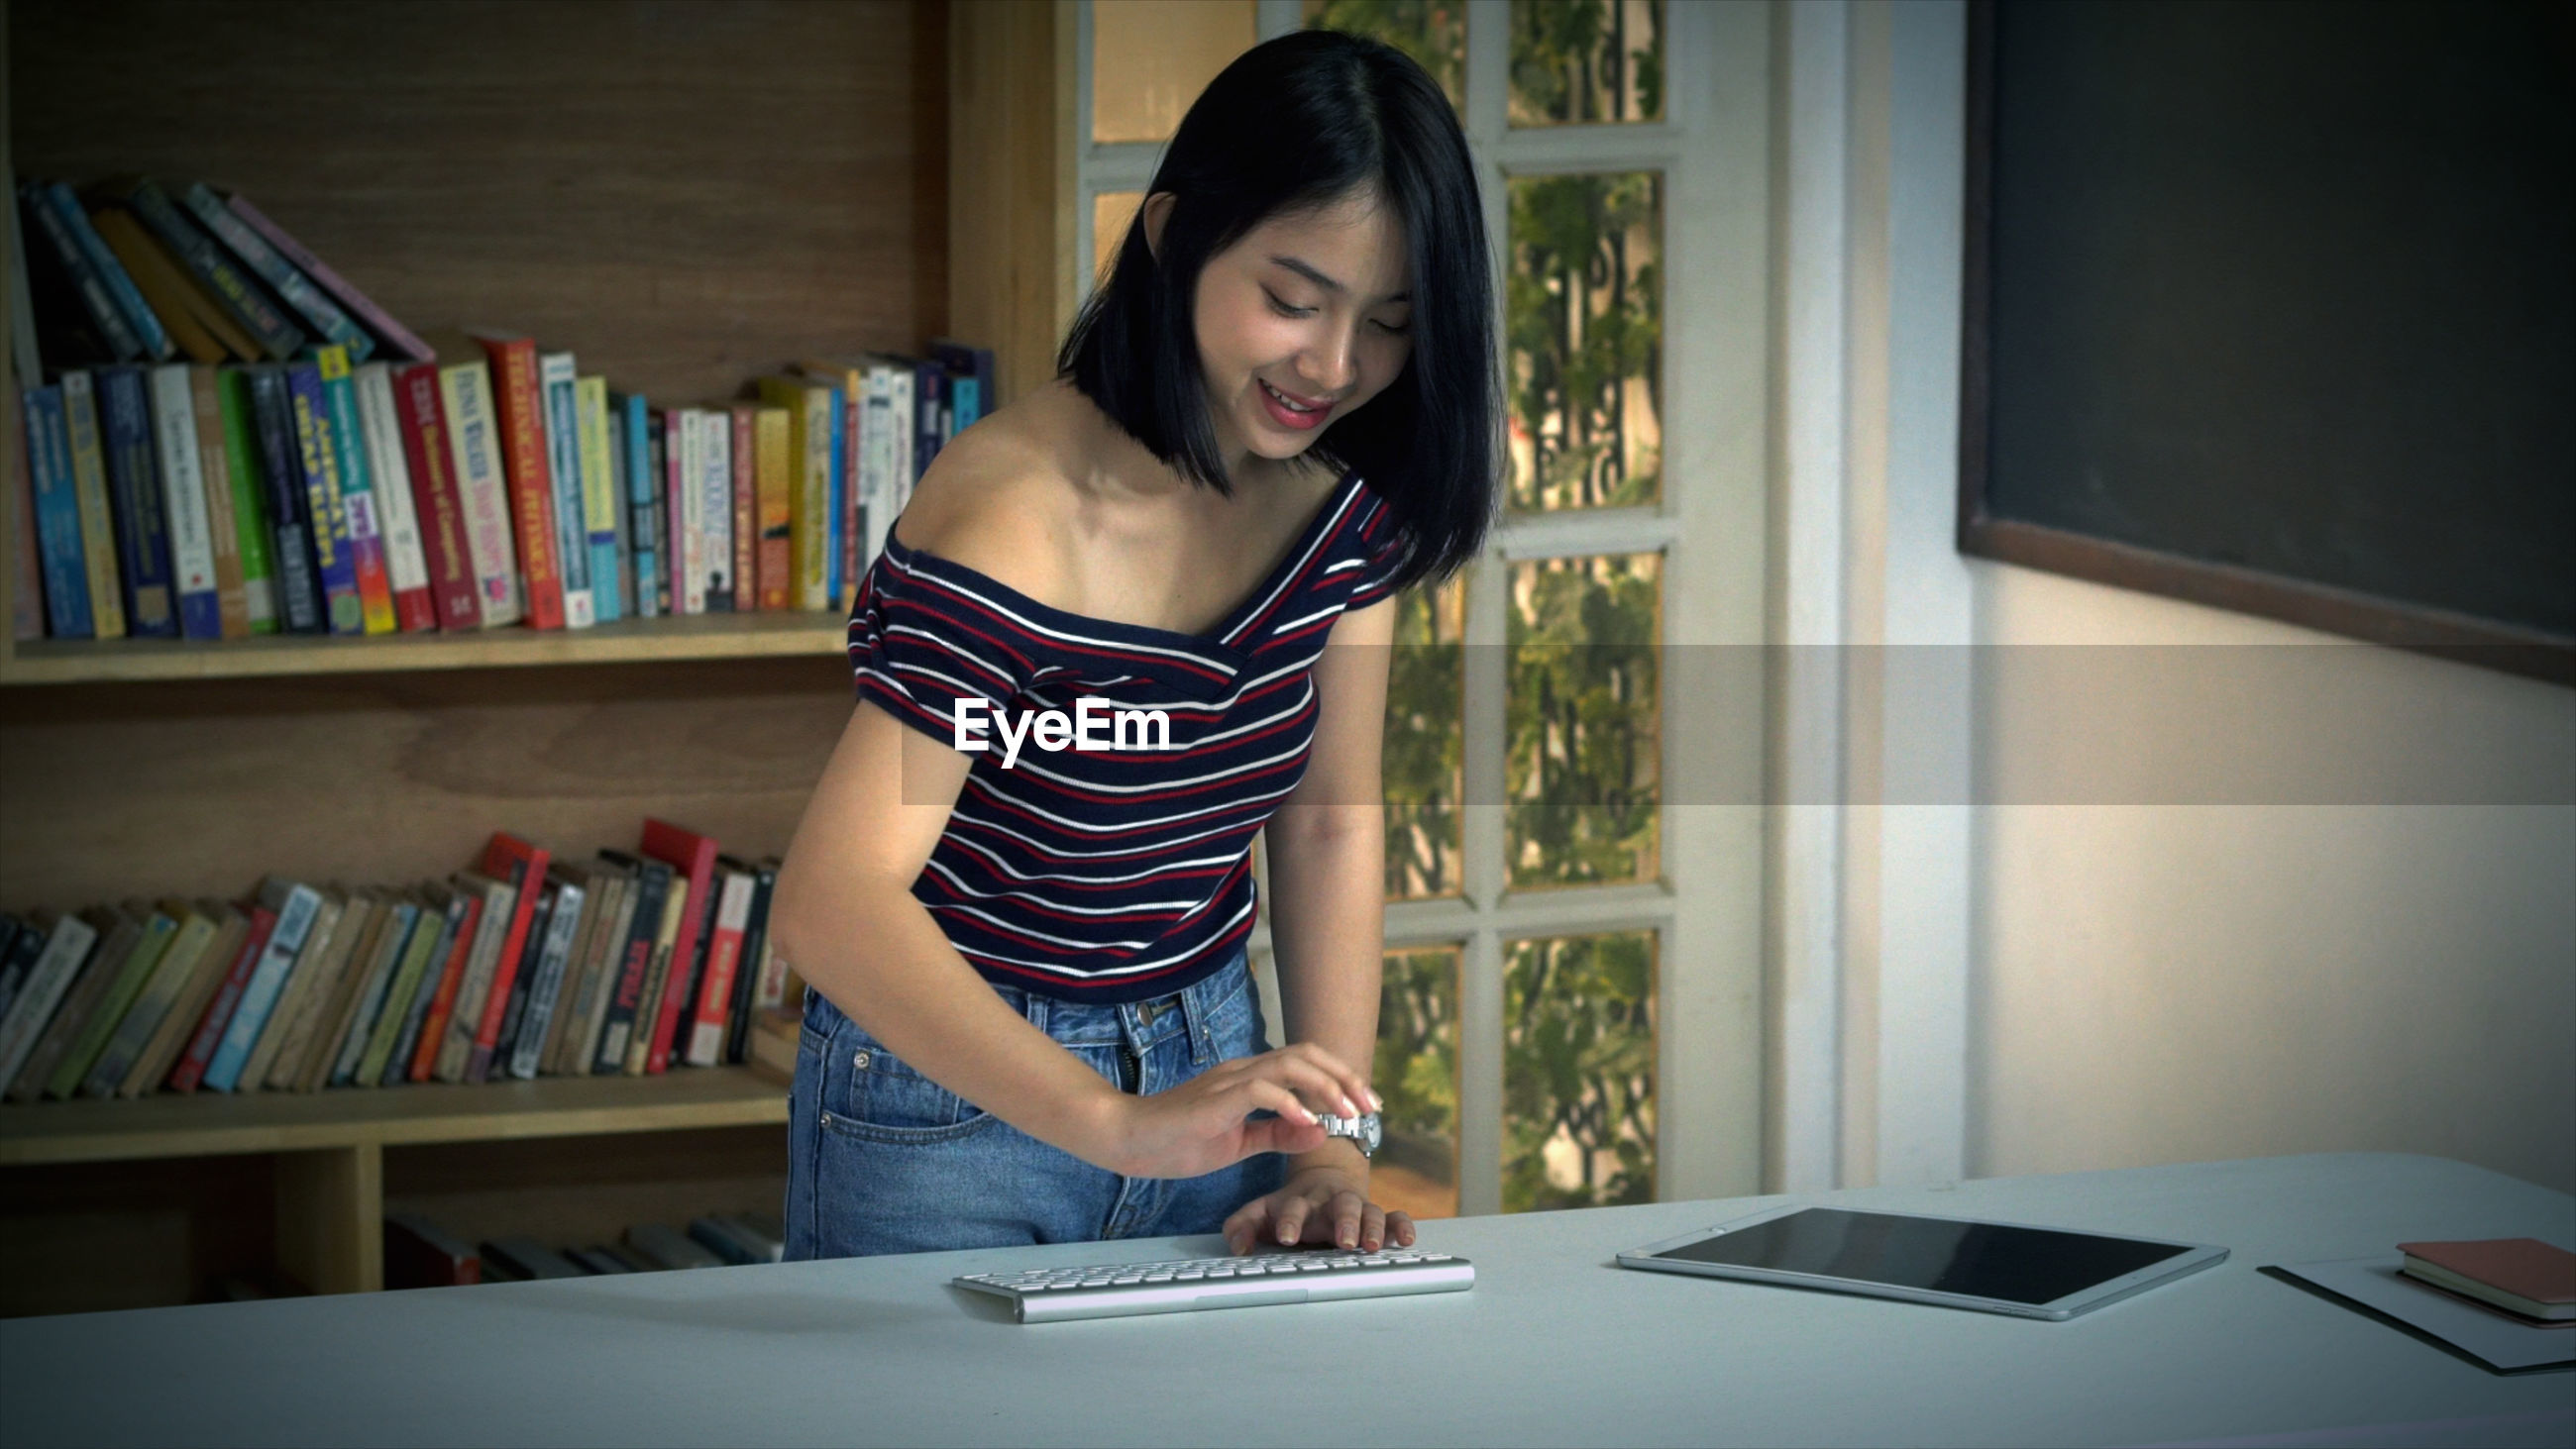 Smiling young woman using computer on table